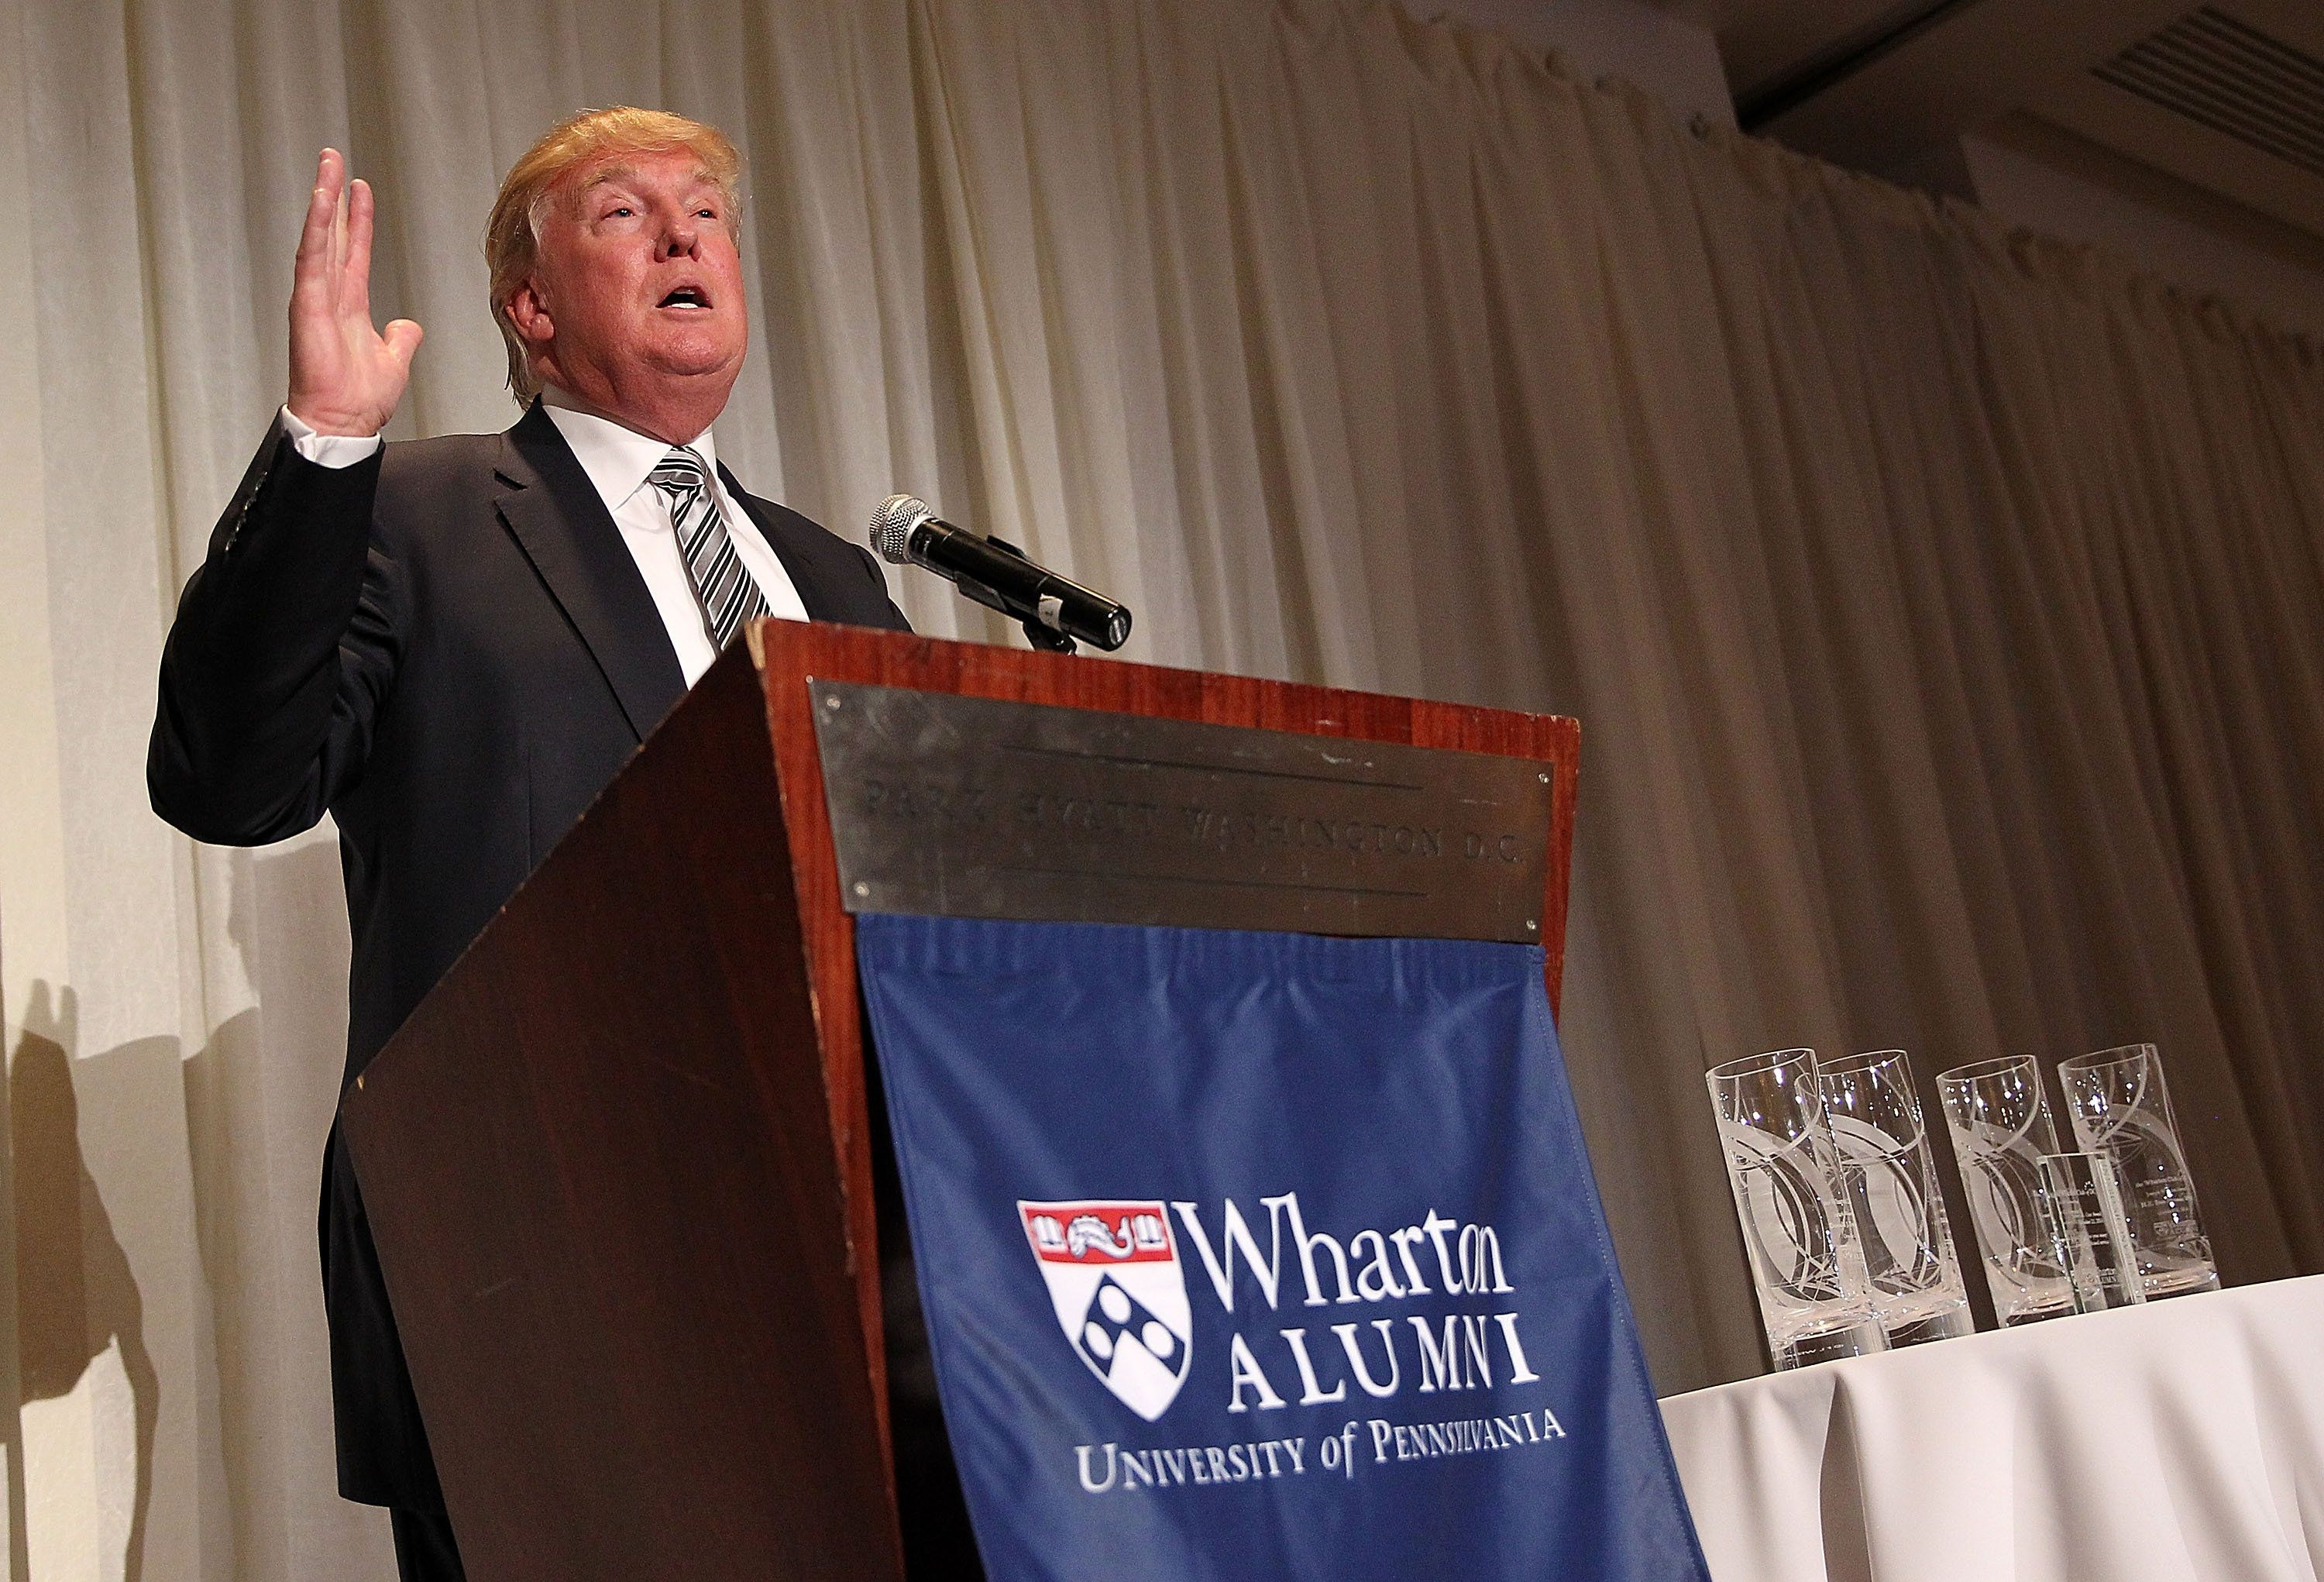 GOP presidential nominee Donald Trump loves to brag about the Wharton School. The feeling does not appear to b